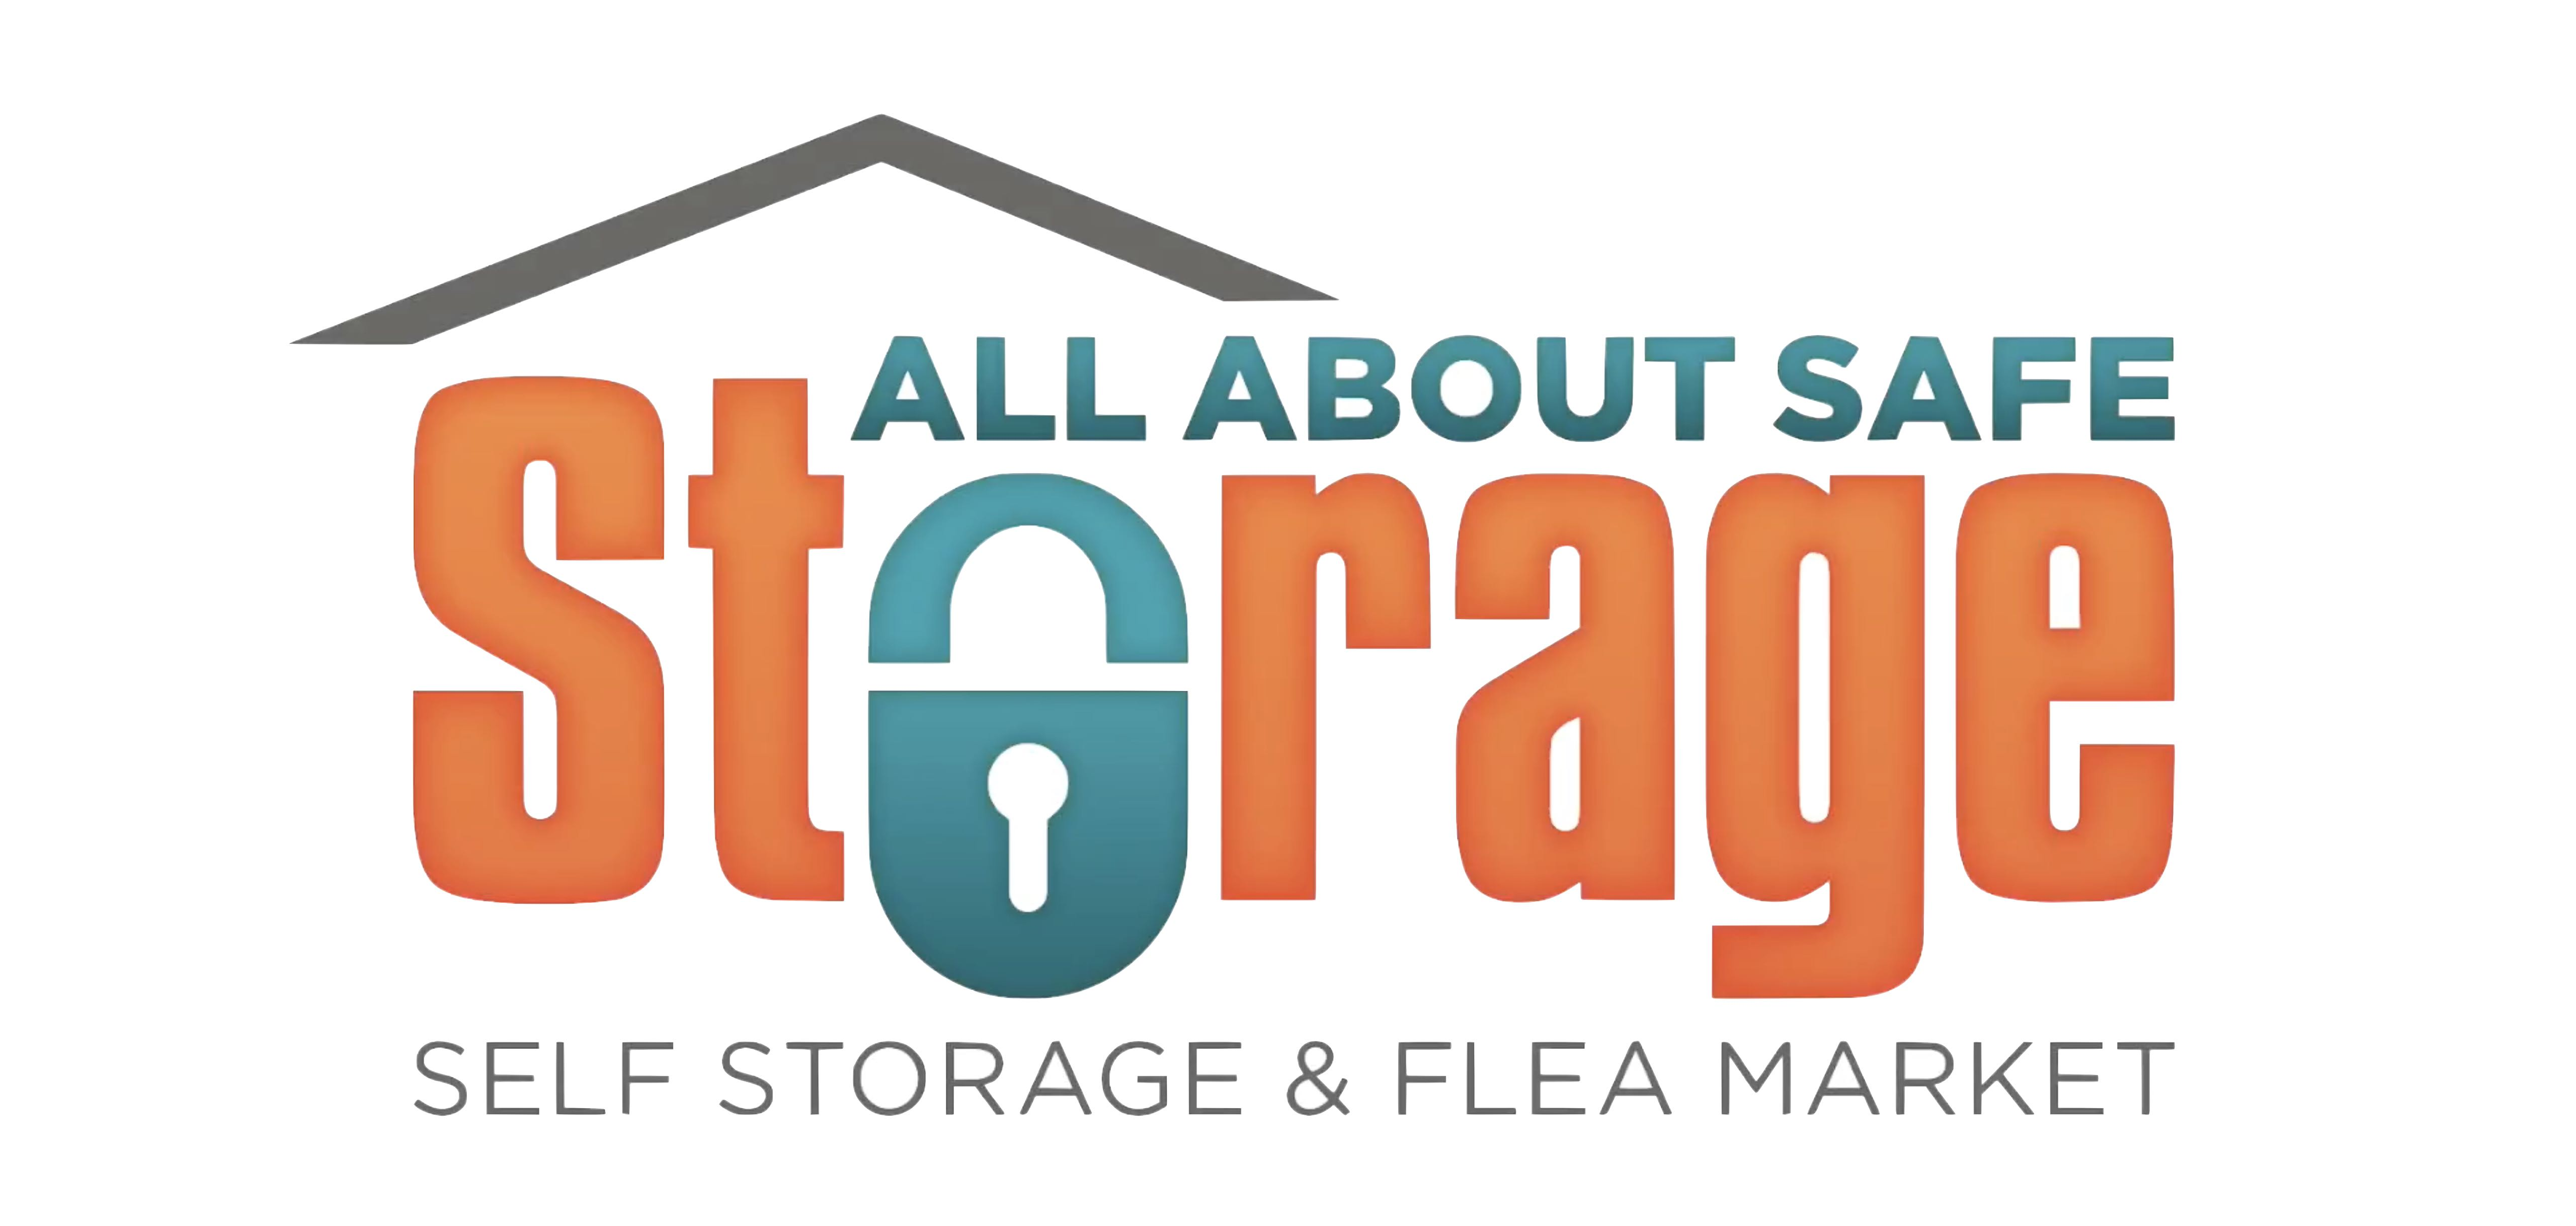 Video – All About Safe Storage and Flea Market